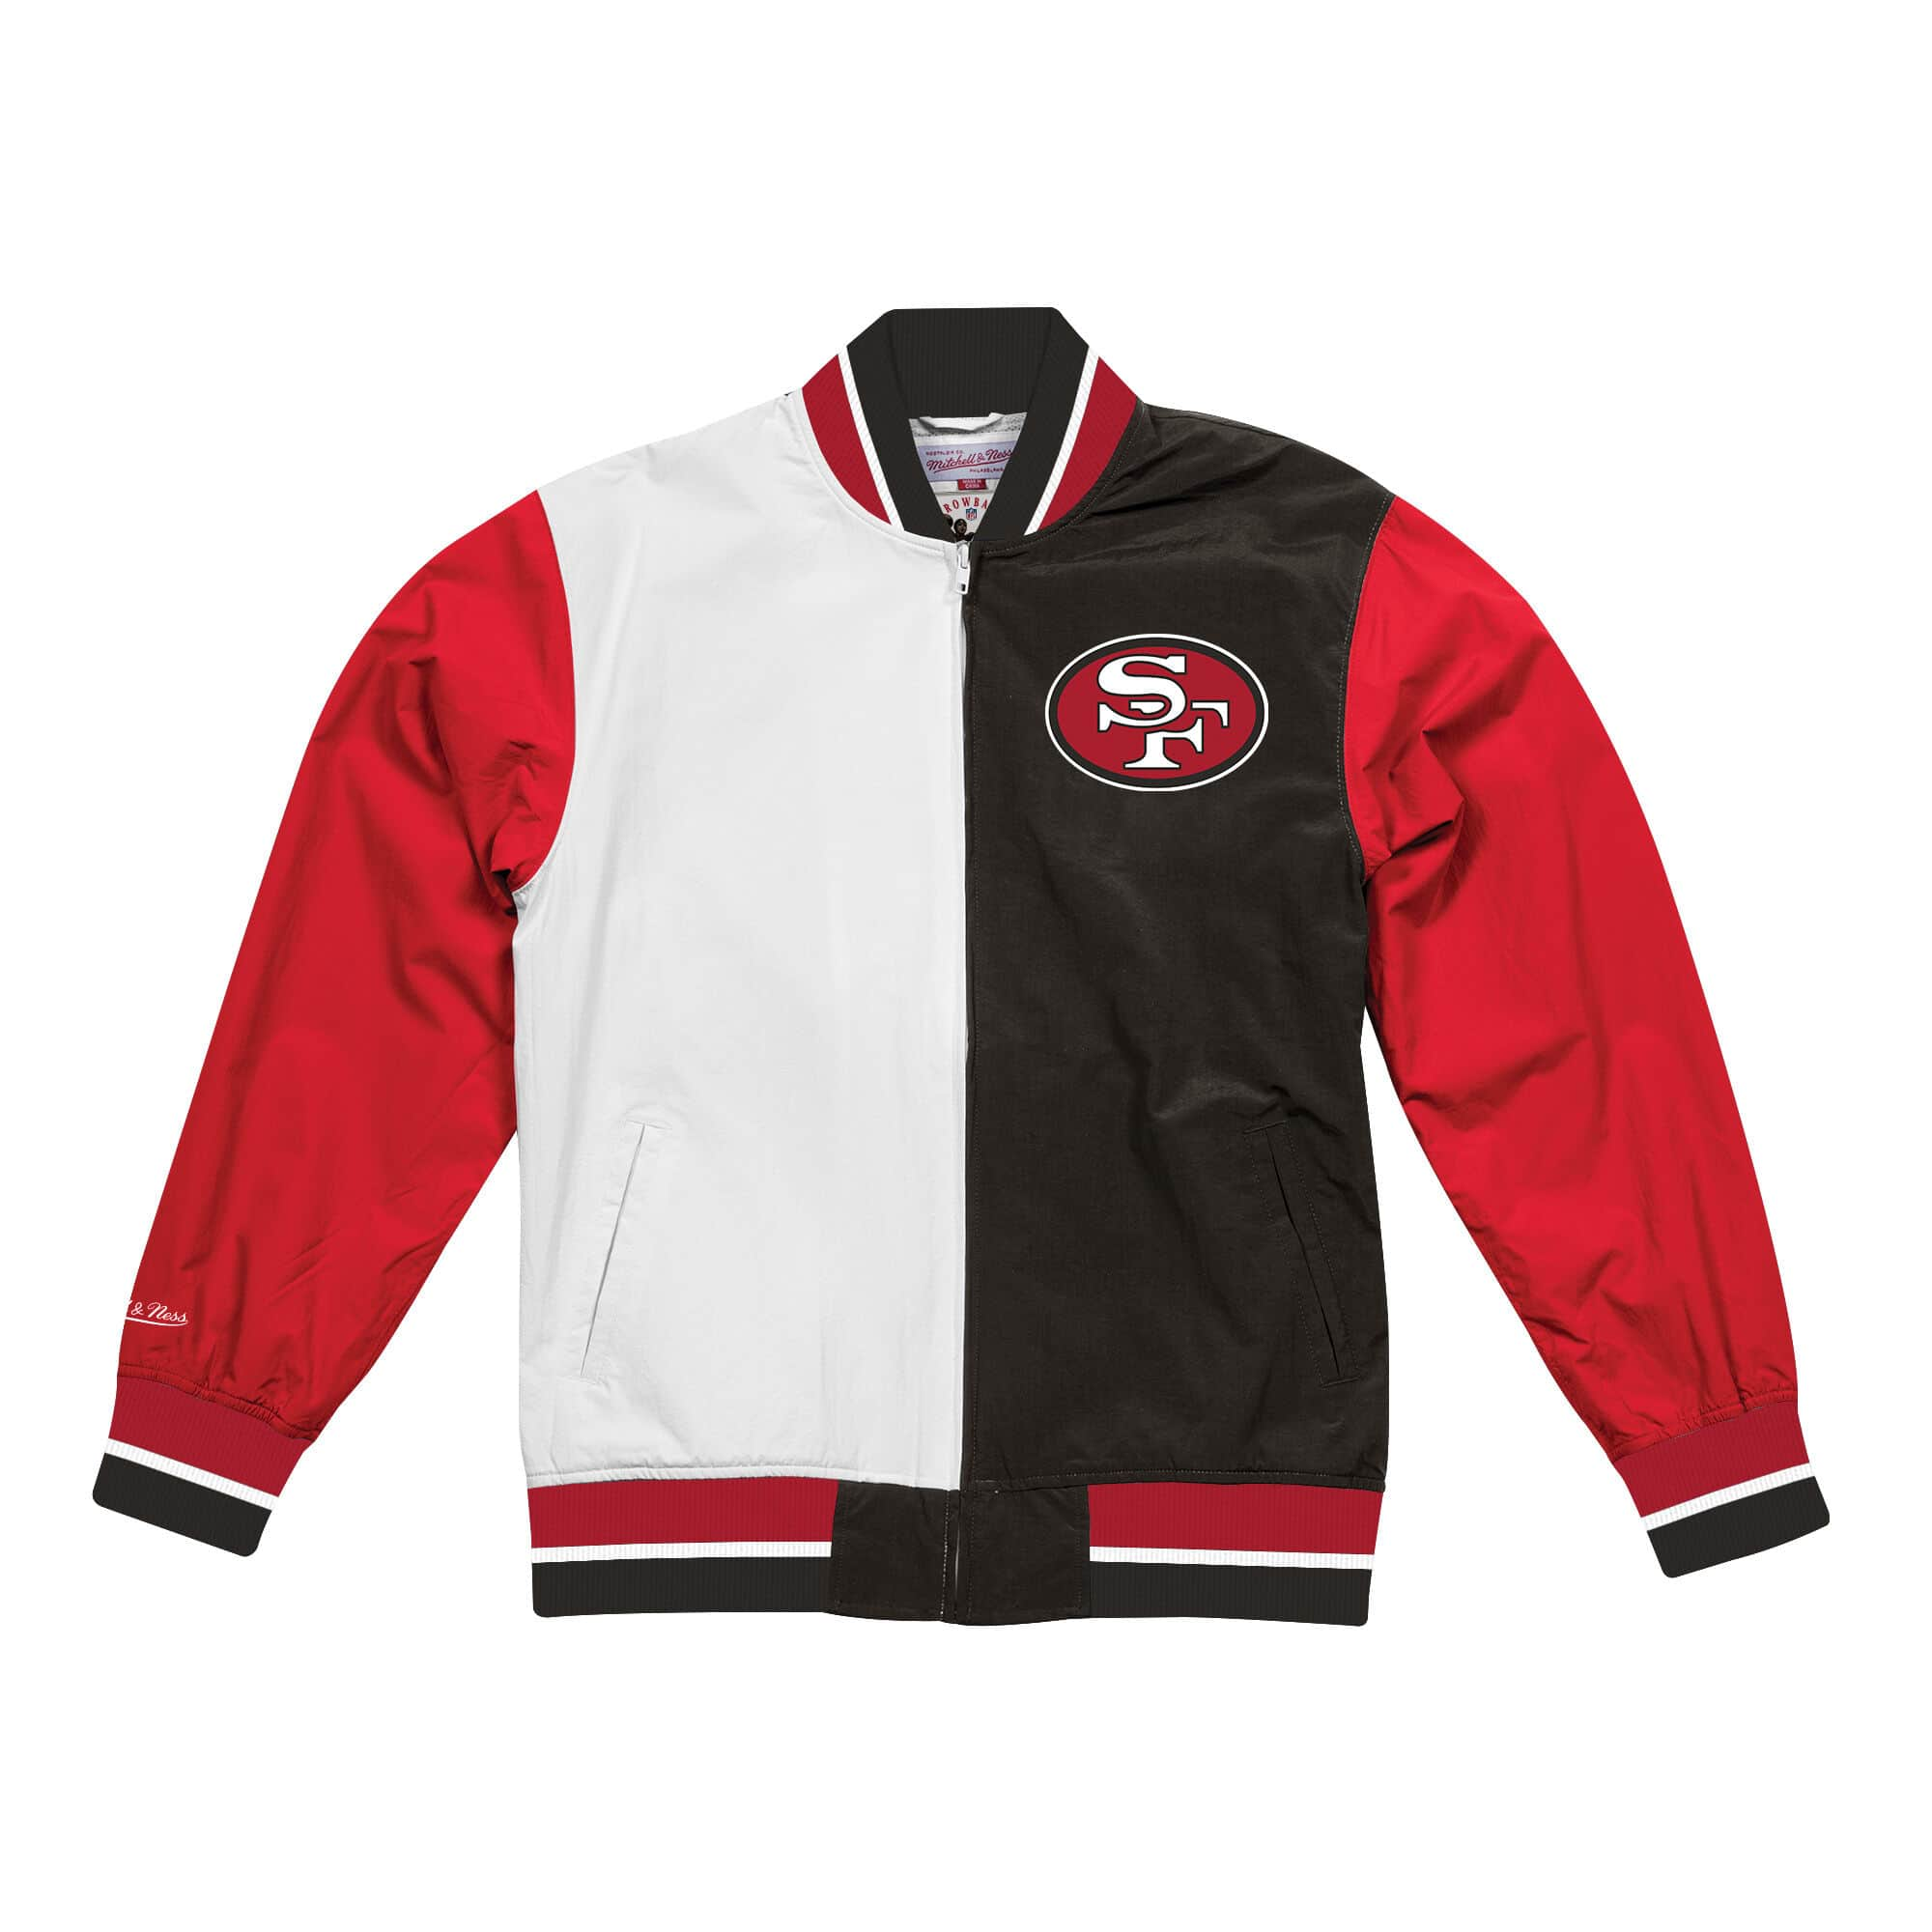 Team History Warm Up Jacket 2.0 San Francisco 49ers